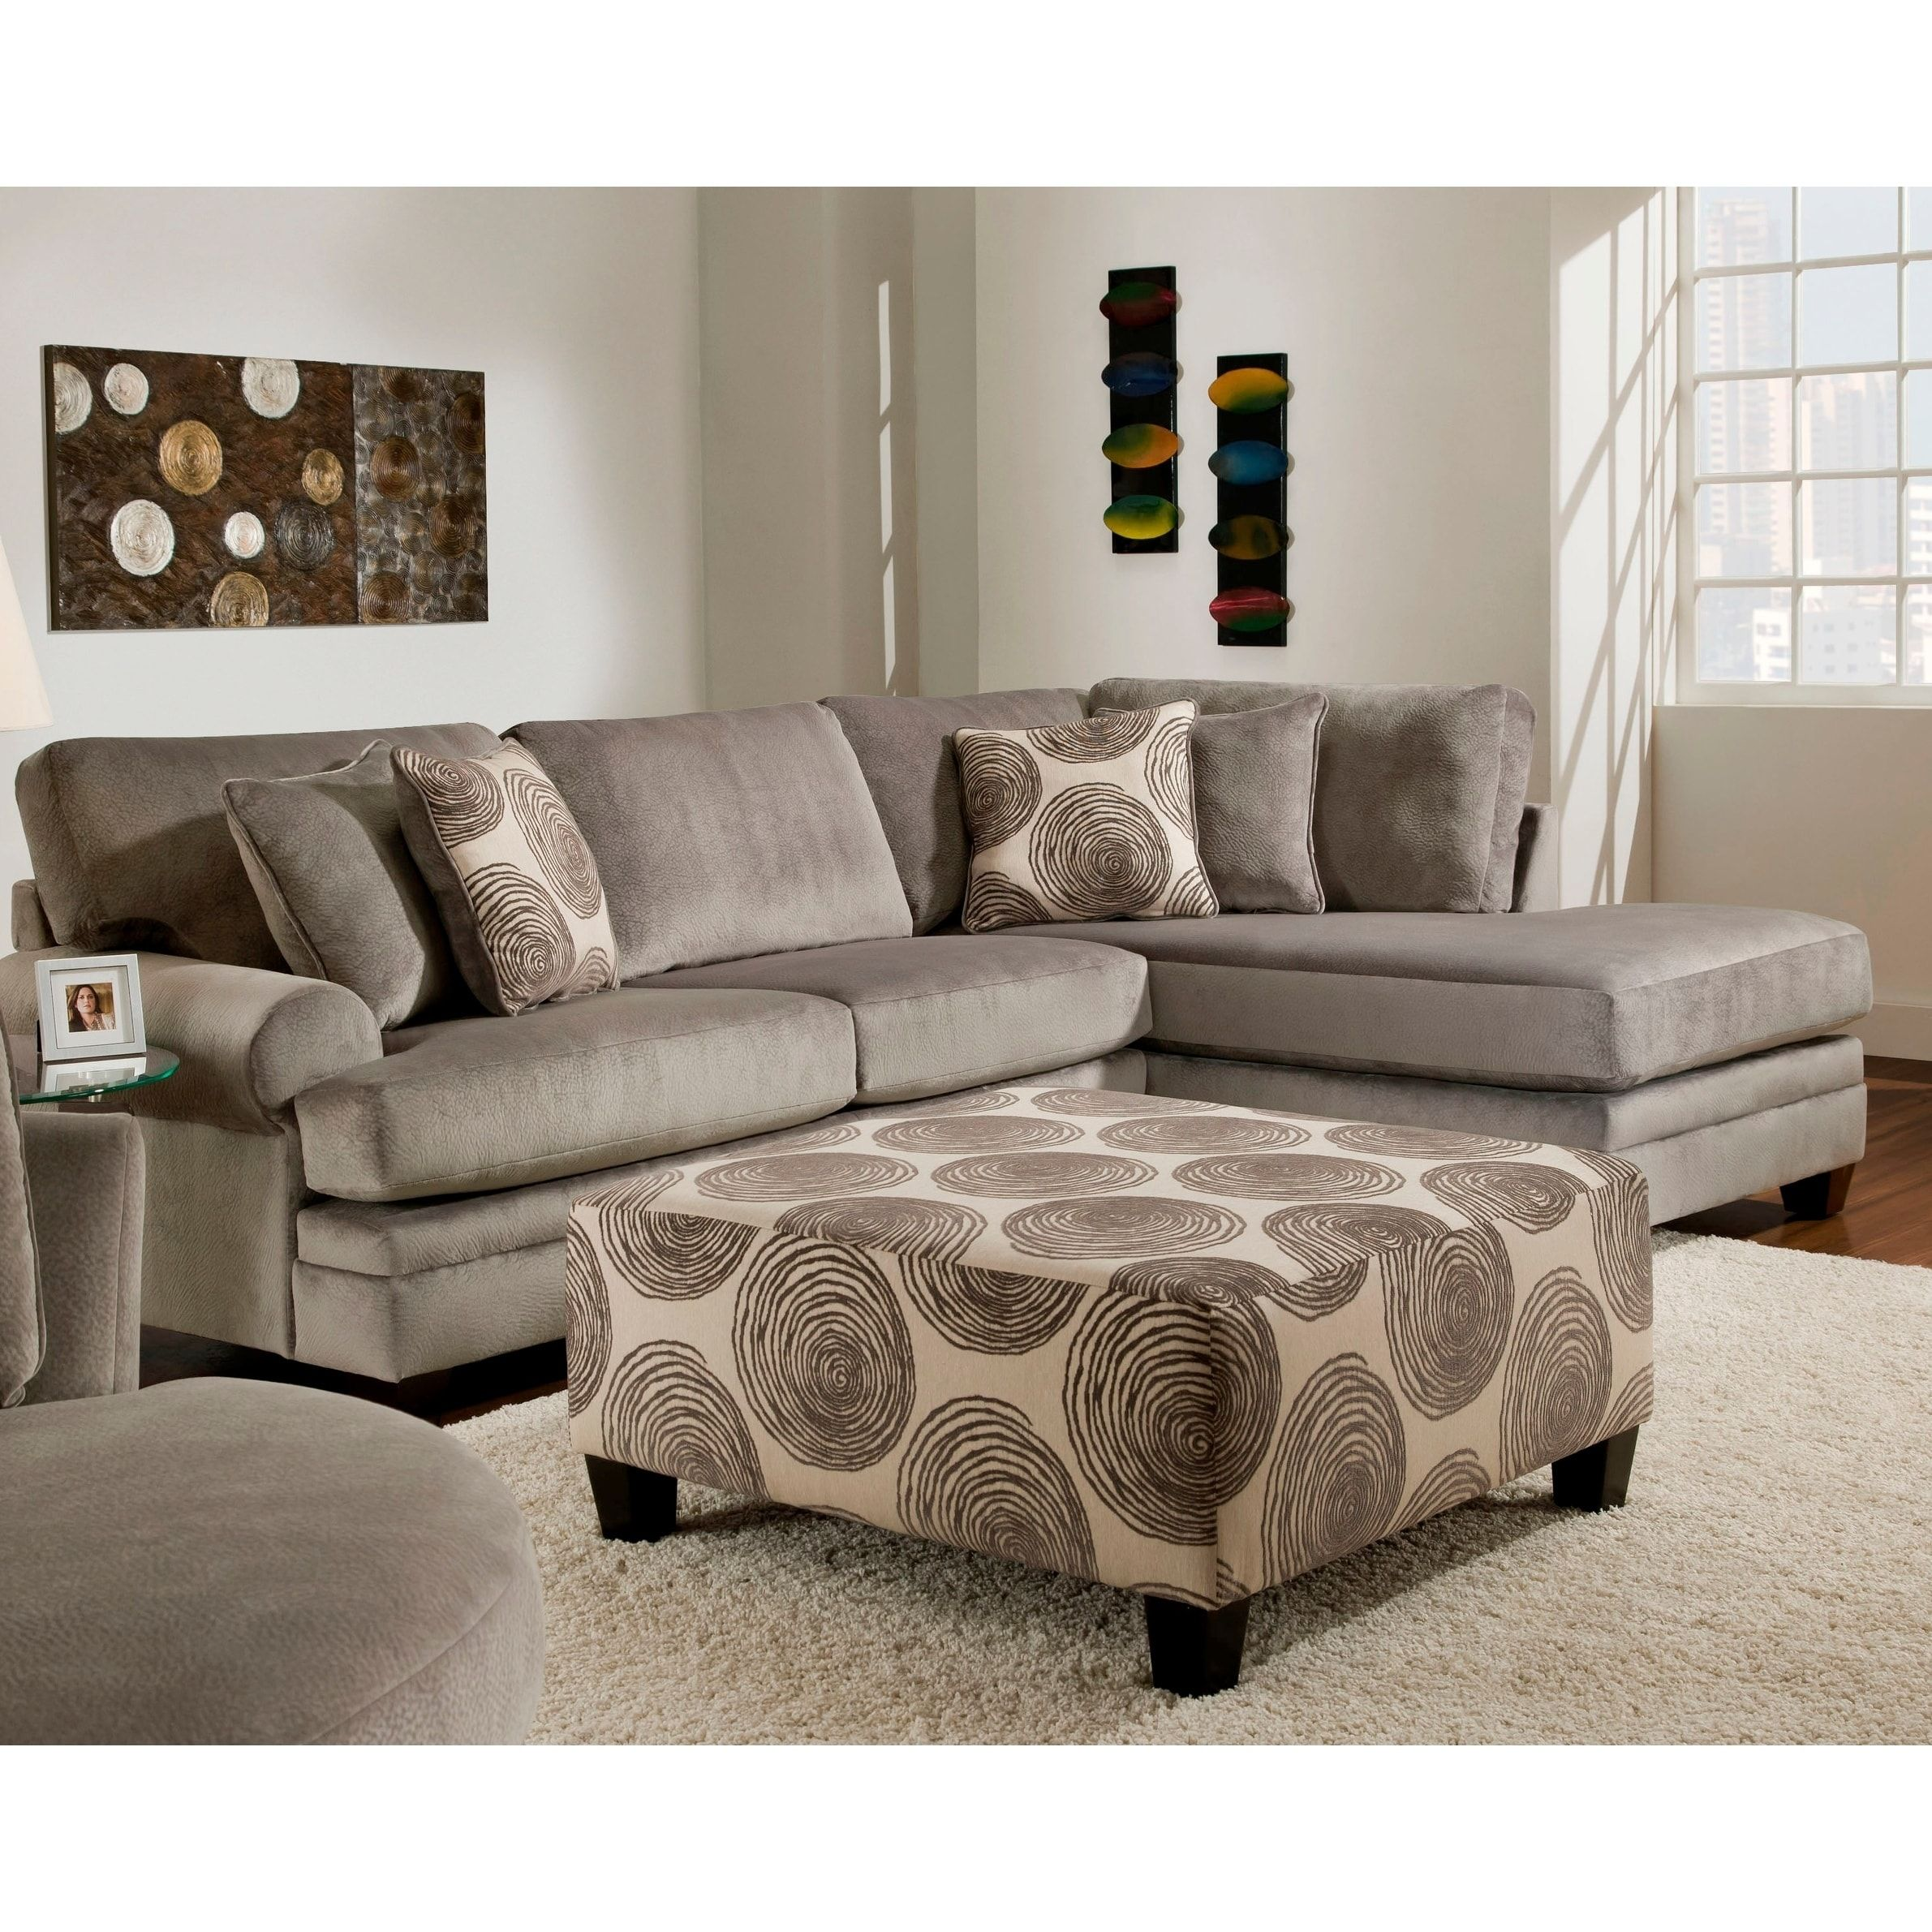 SofaTrendz Padded Micro Suede Sectional and Ottoman Set Smoke